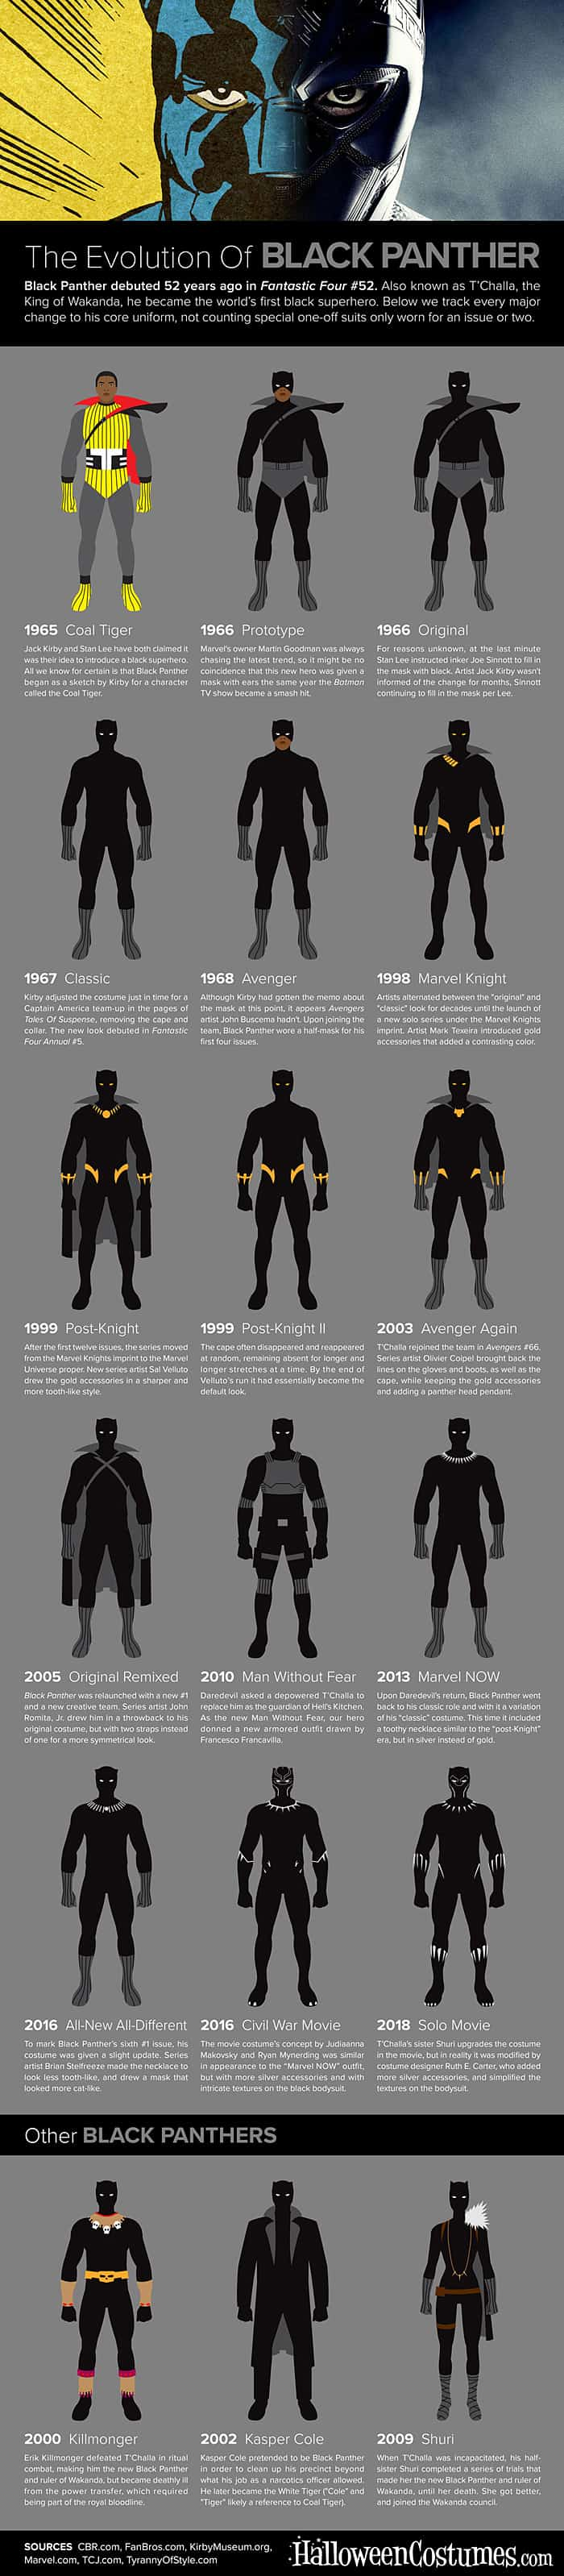 The Evolution of Black Panther (Infographic)